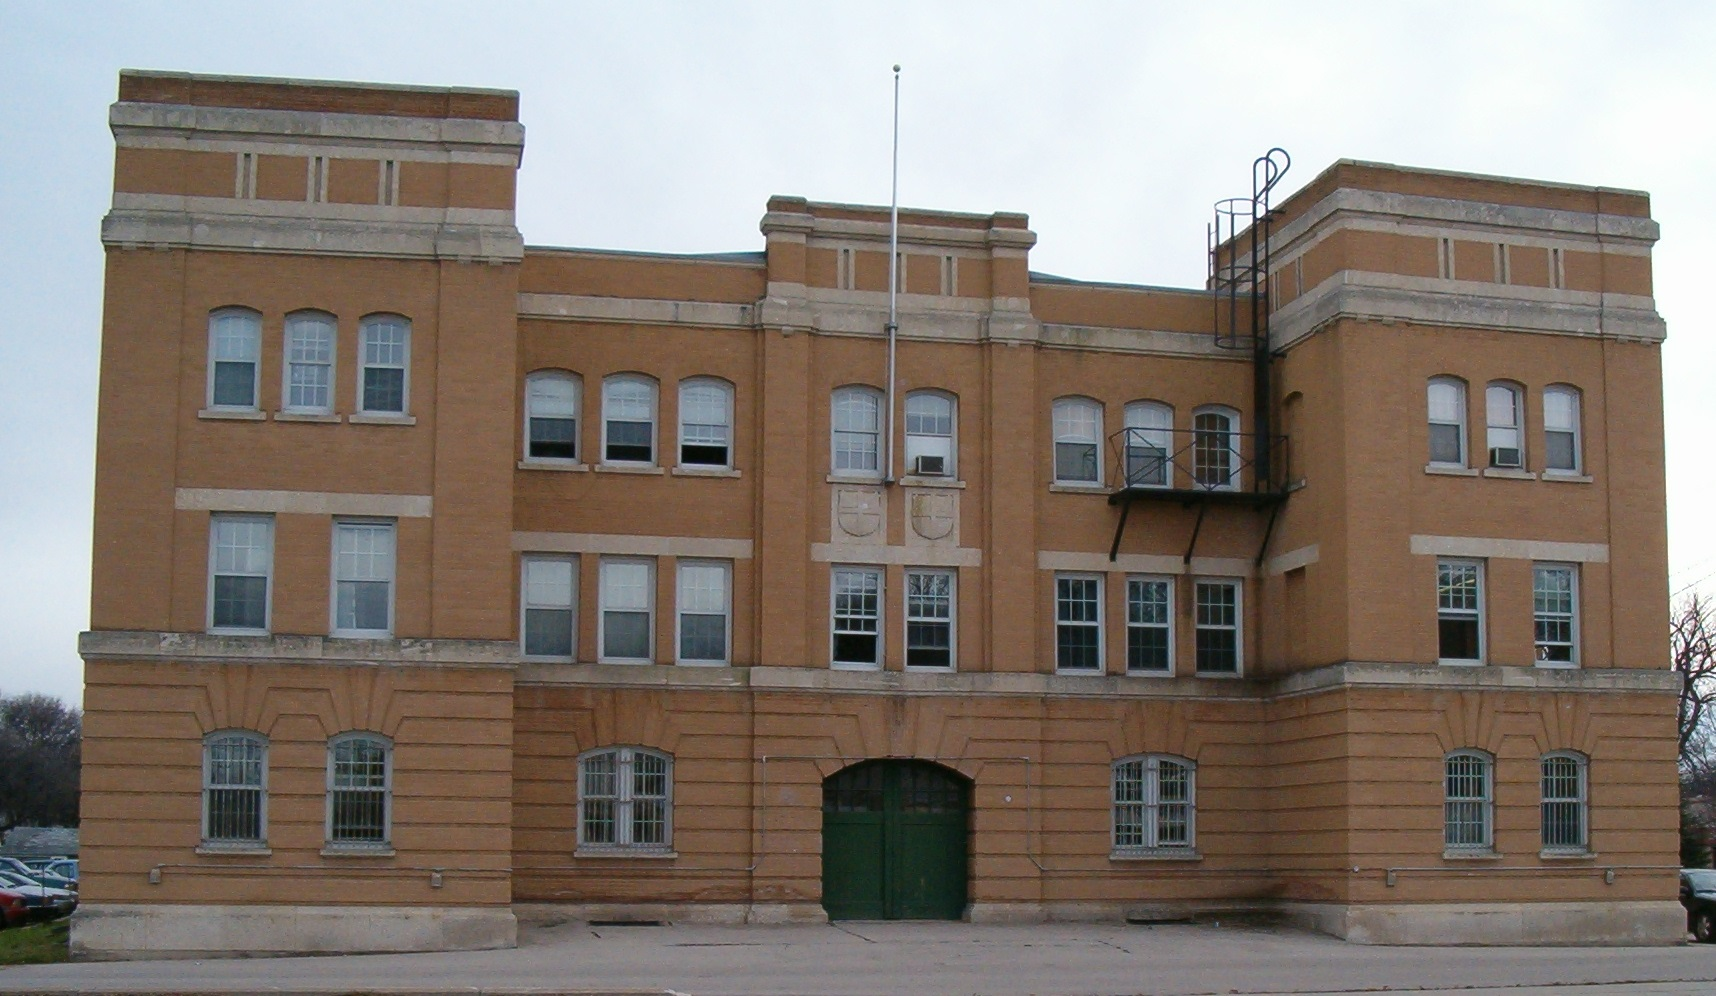 McGregor Armoury has been part of Winnipeg's North End Community for over a century and has been home to various community uses, such as sports leagues, as well as Army Reserve units.